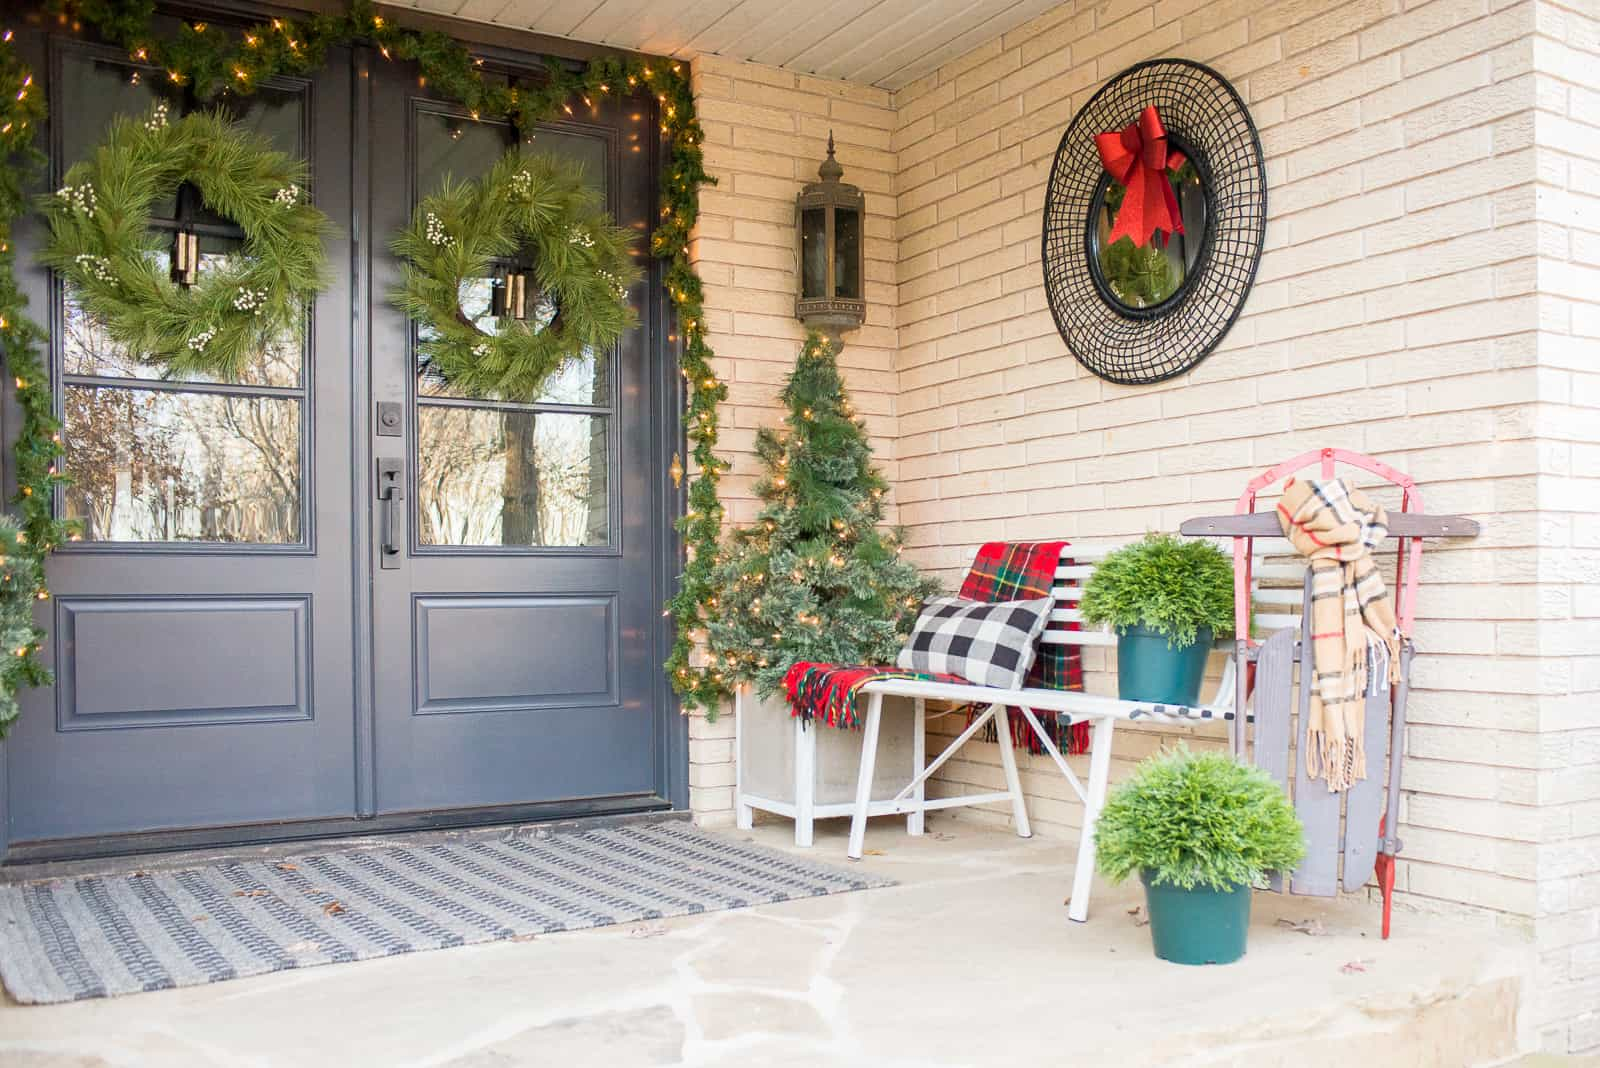 Christmas Doors, Exterior ideas for Christmas. Decorating Tips for Christmas